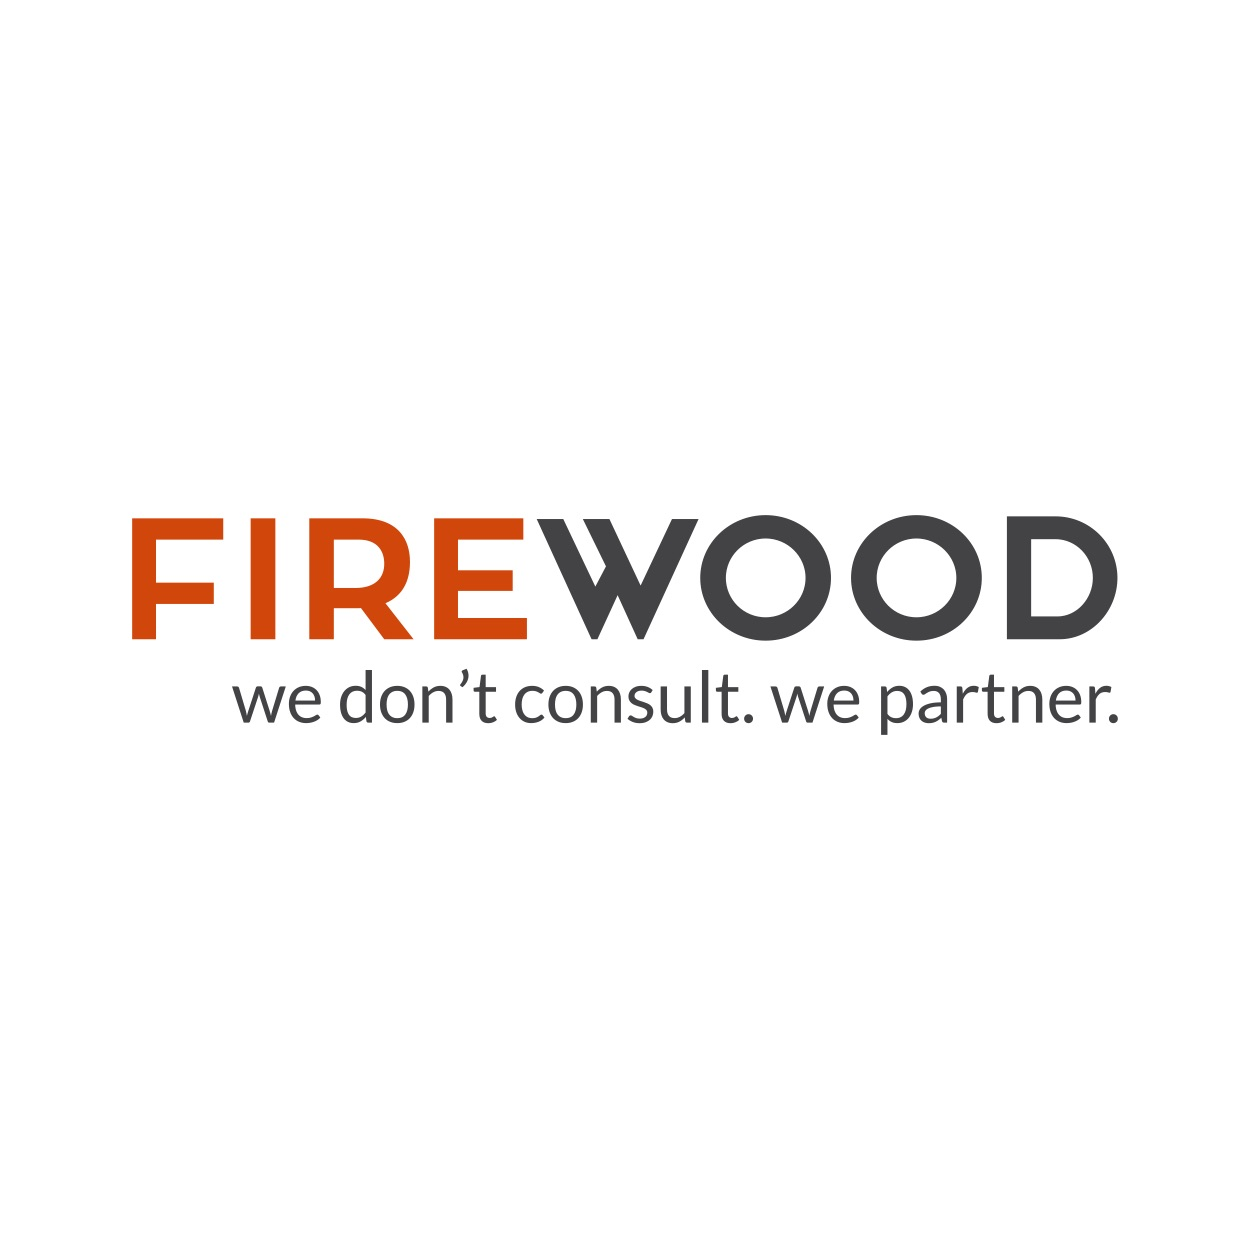 Firewood Marketing Expands to Over 100 Employees